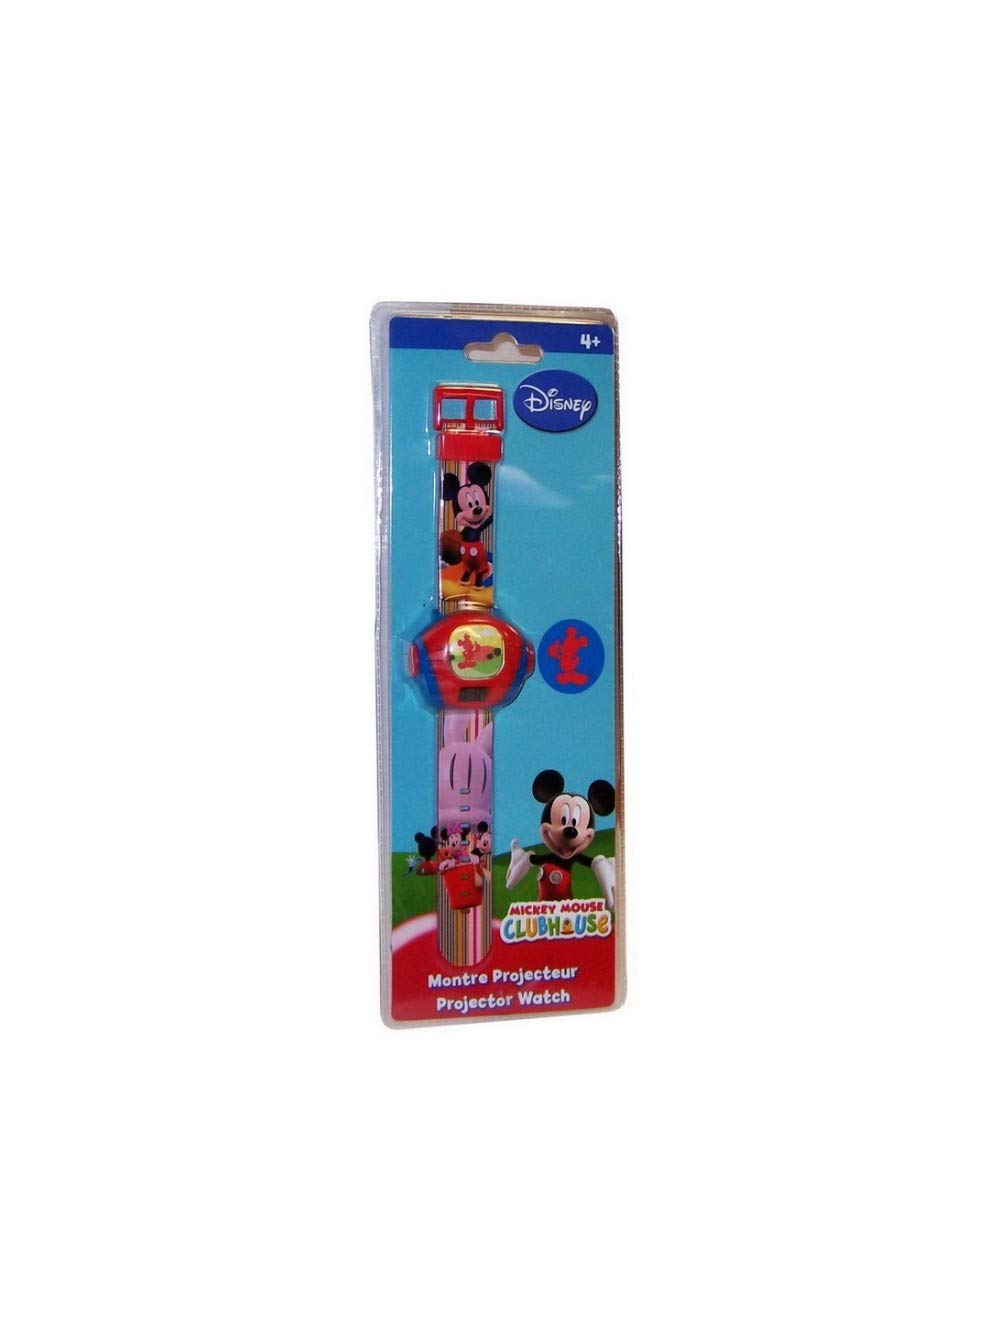 Disney Mickey Mouse Clubhouse Proyector Reloj: Amazon.es: Juguetes ...